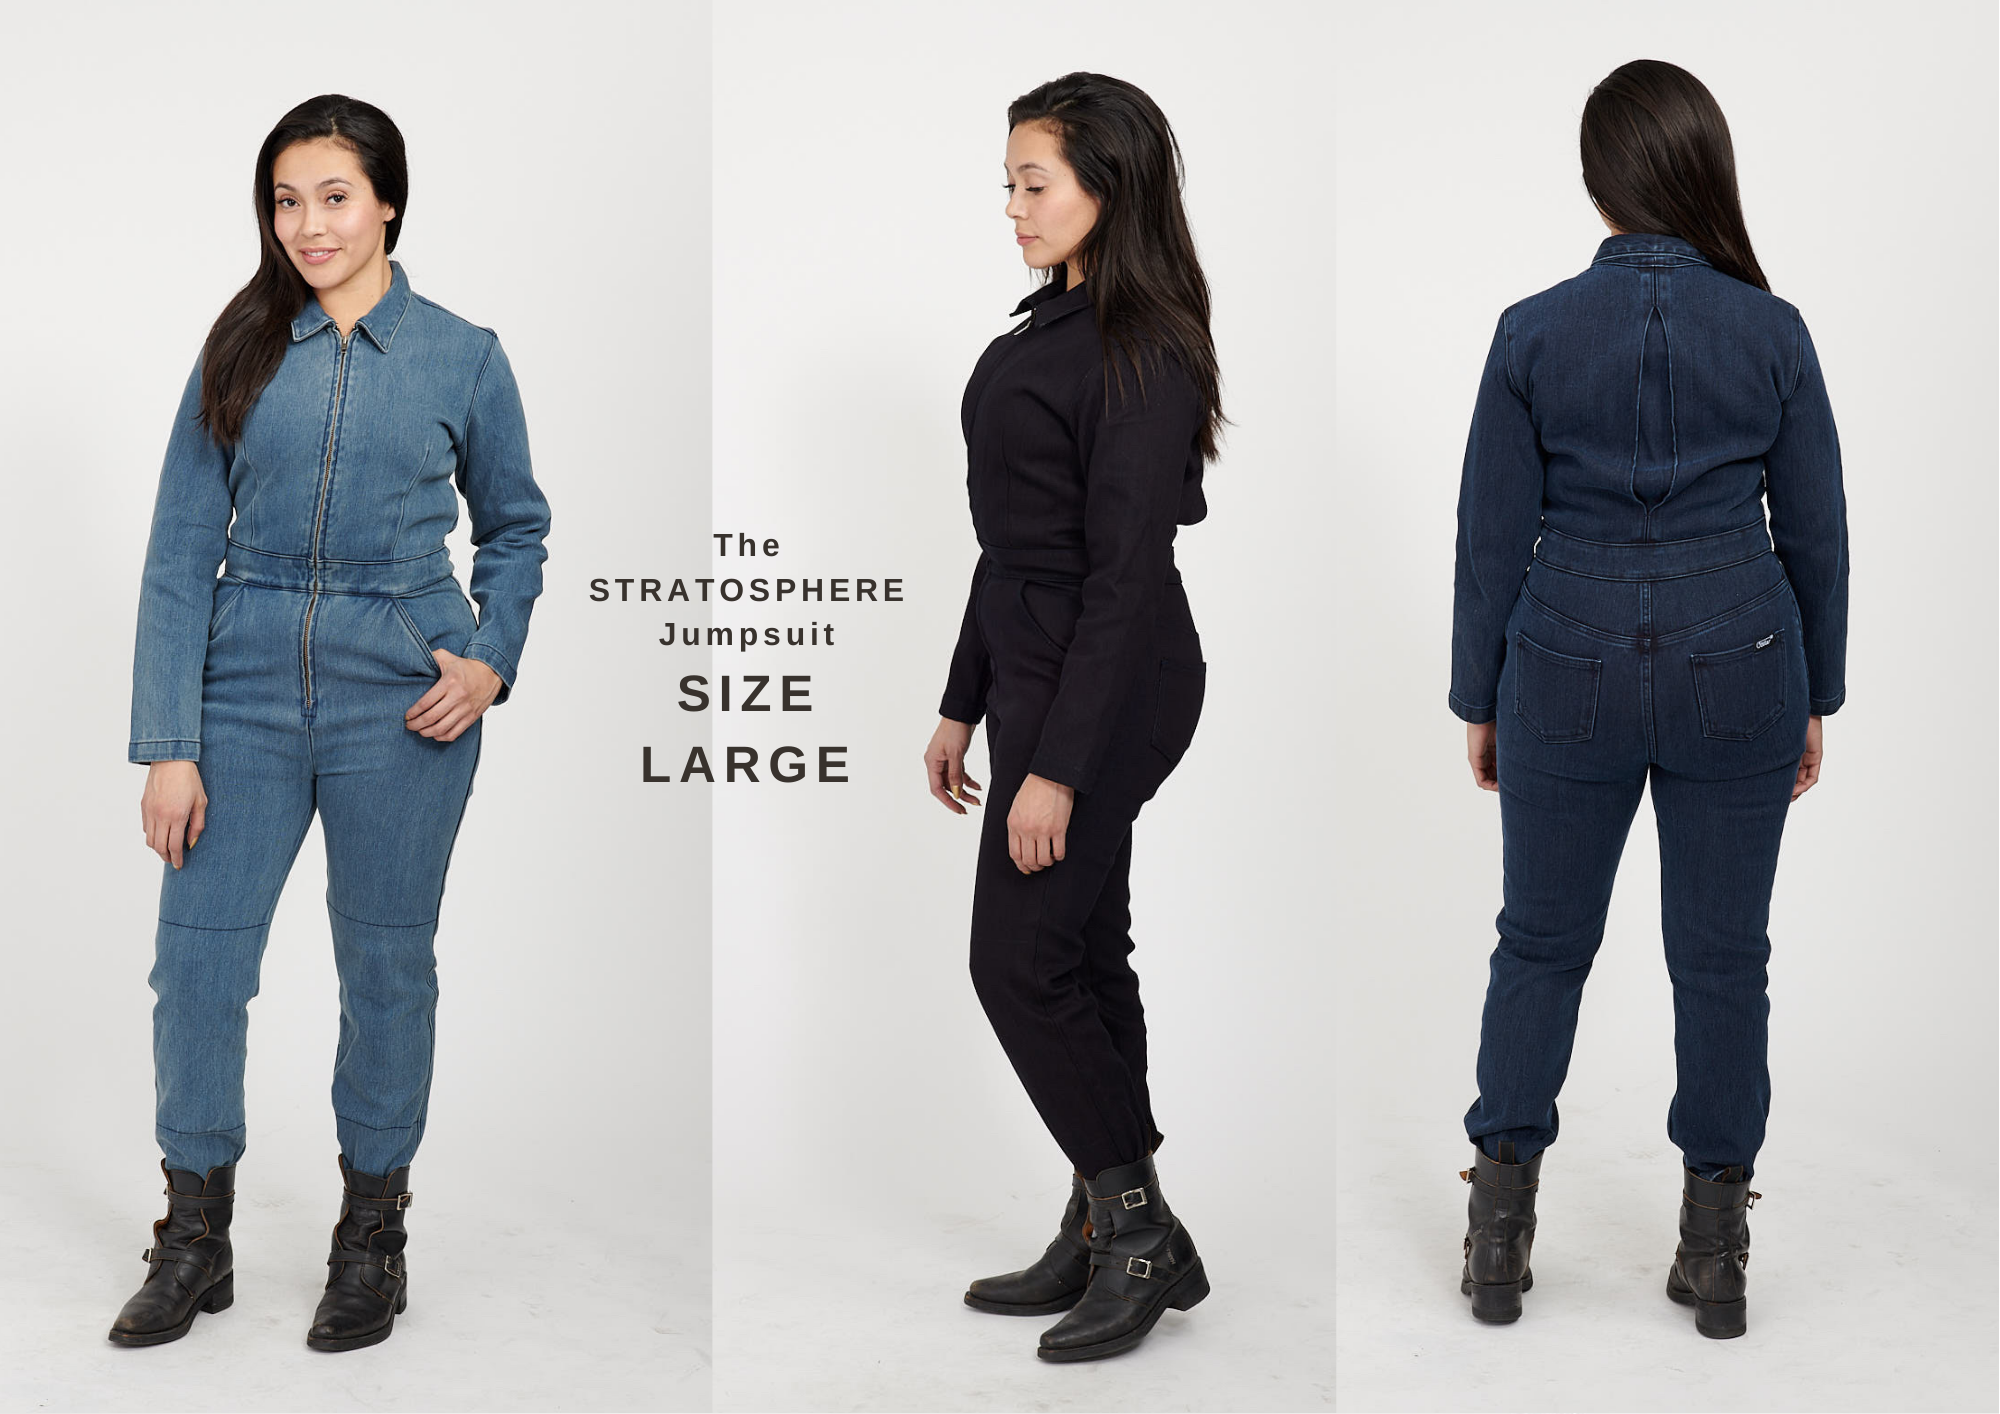 The Stratosphere Jumpsuit